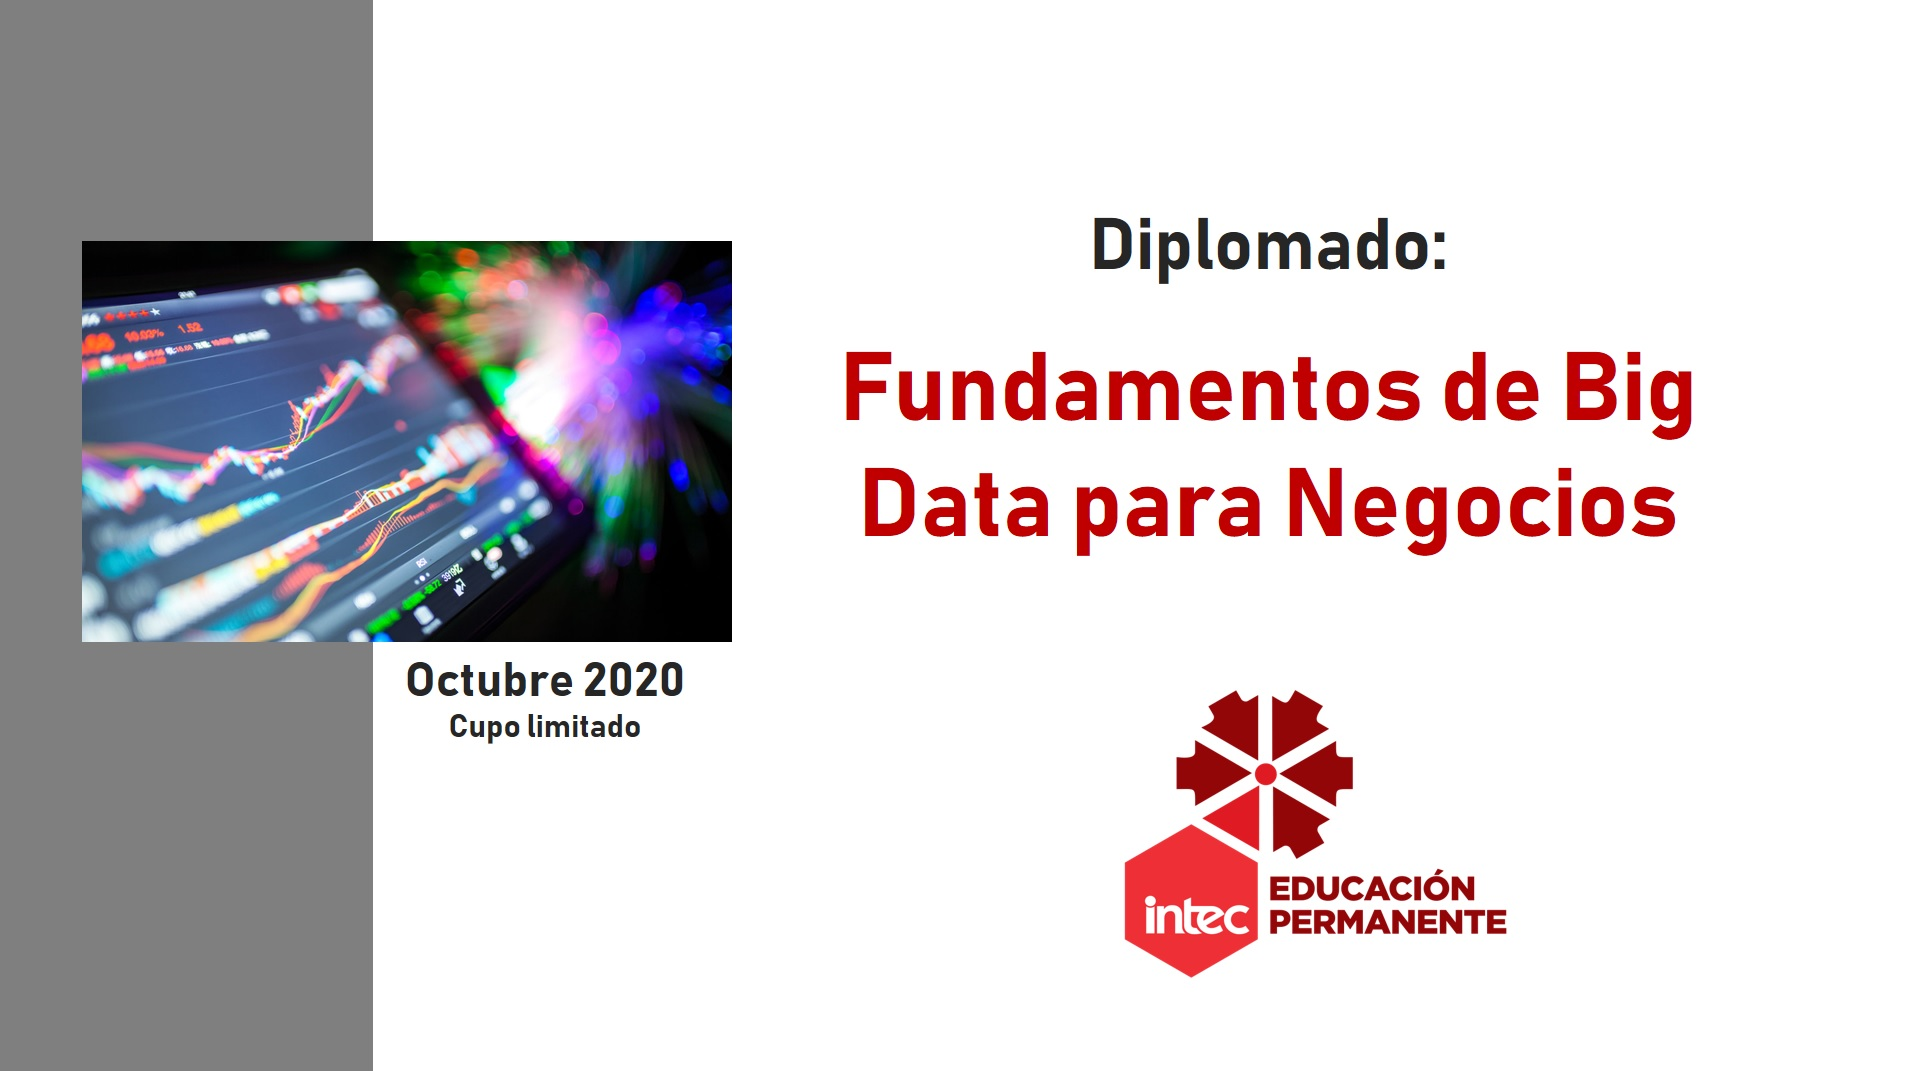 Diplomado en Fundamentos de Big Data para Negocios